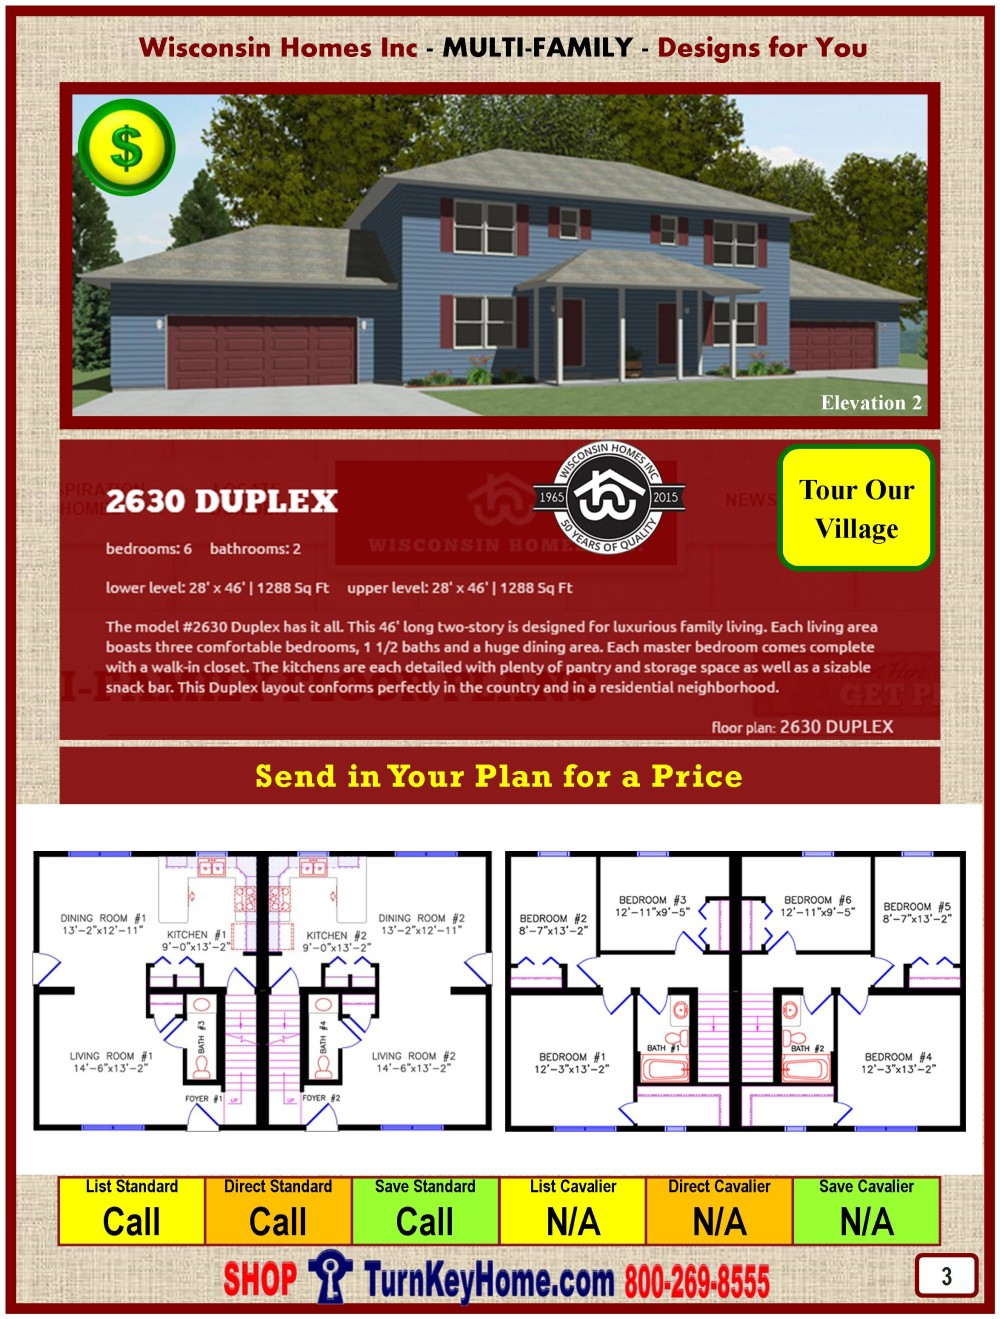 Multi Family Modular Home Prices From Wisconsin Homes Inc